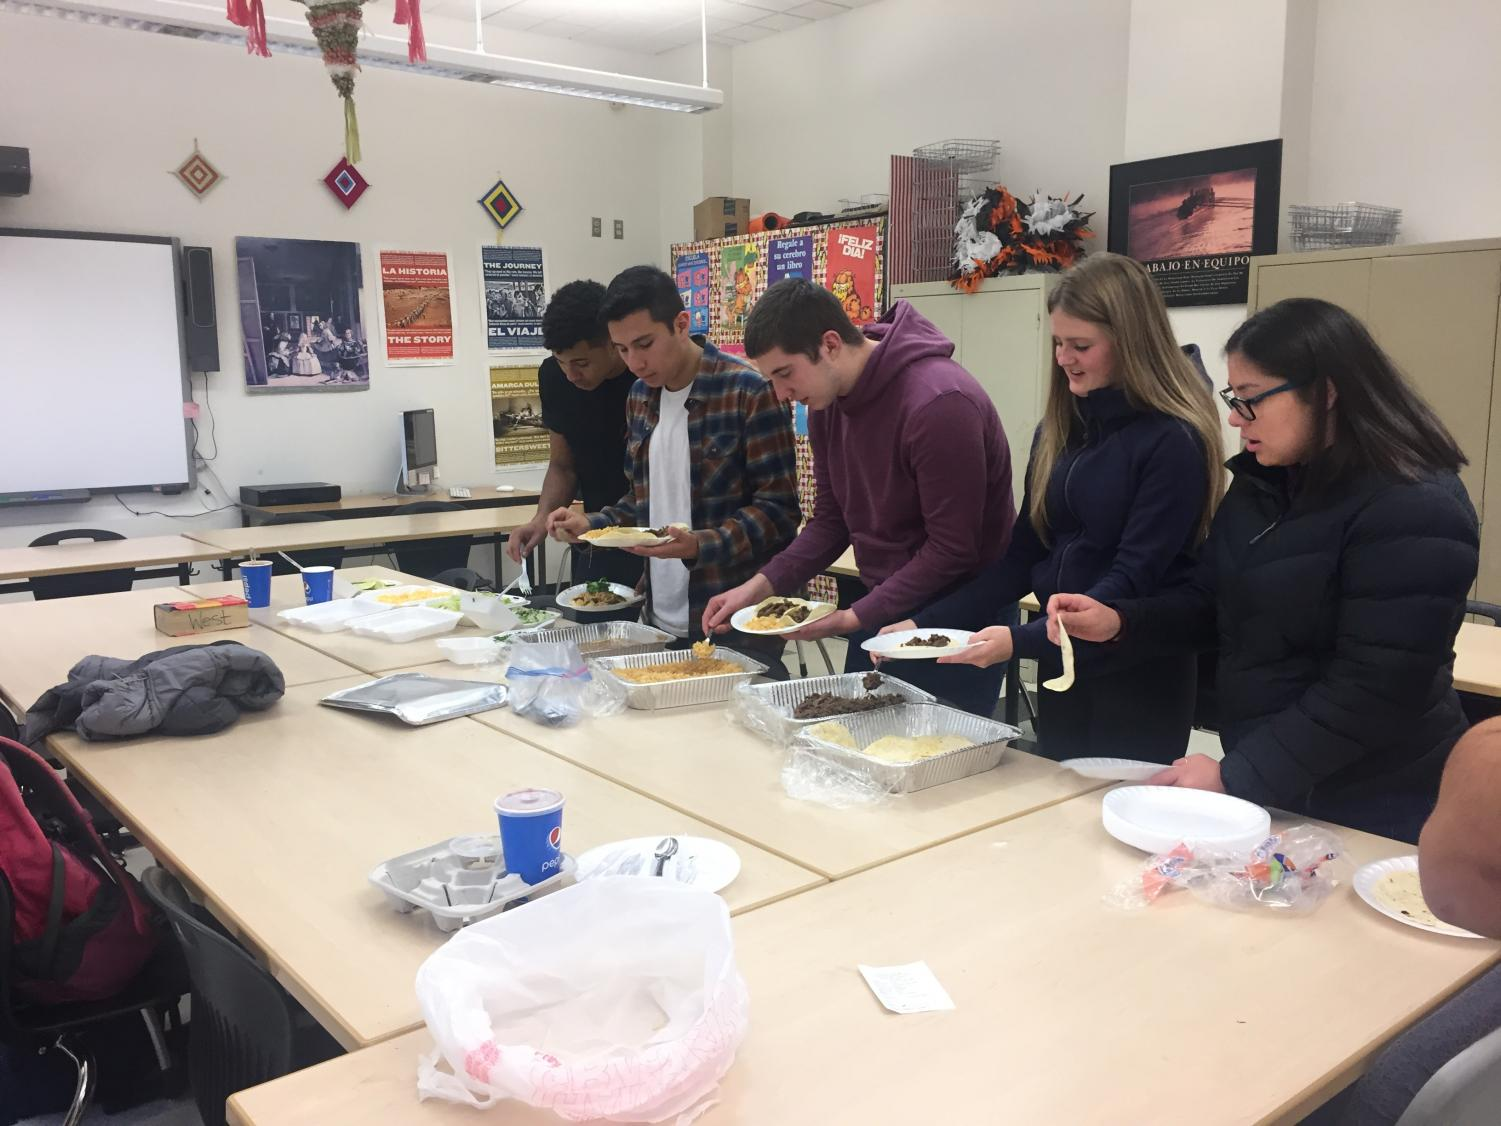 West students eating lunch at a potluck in a classroom.